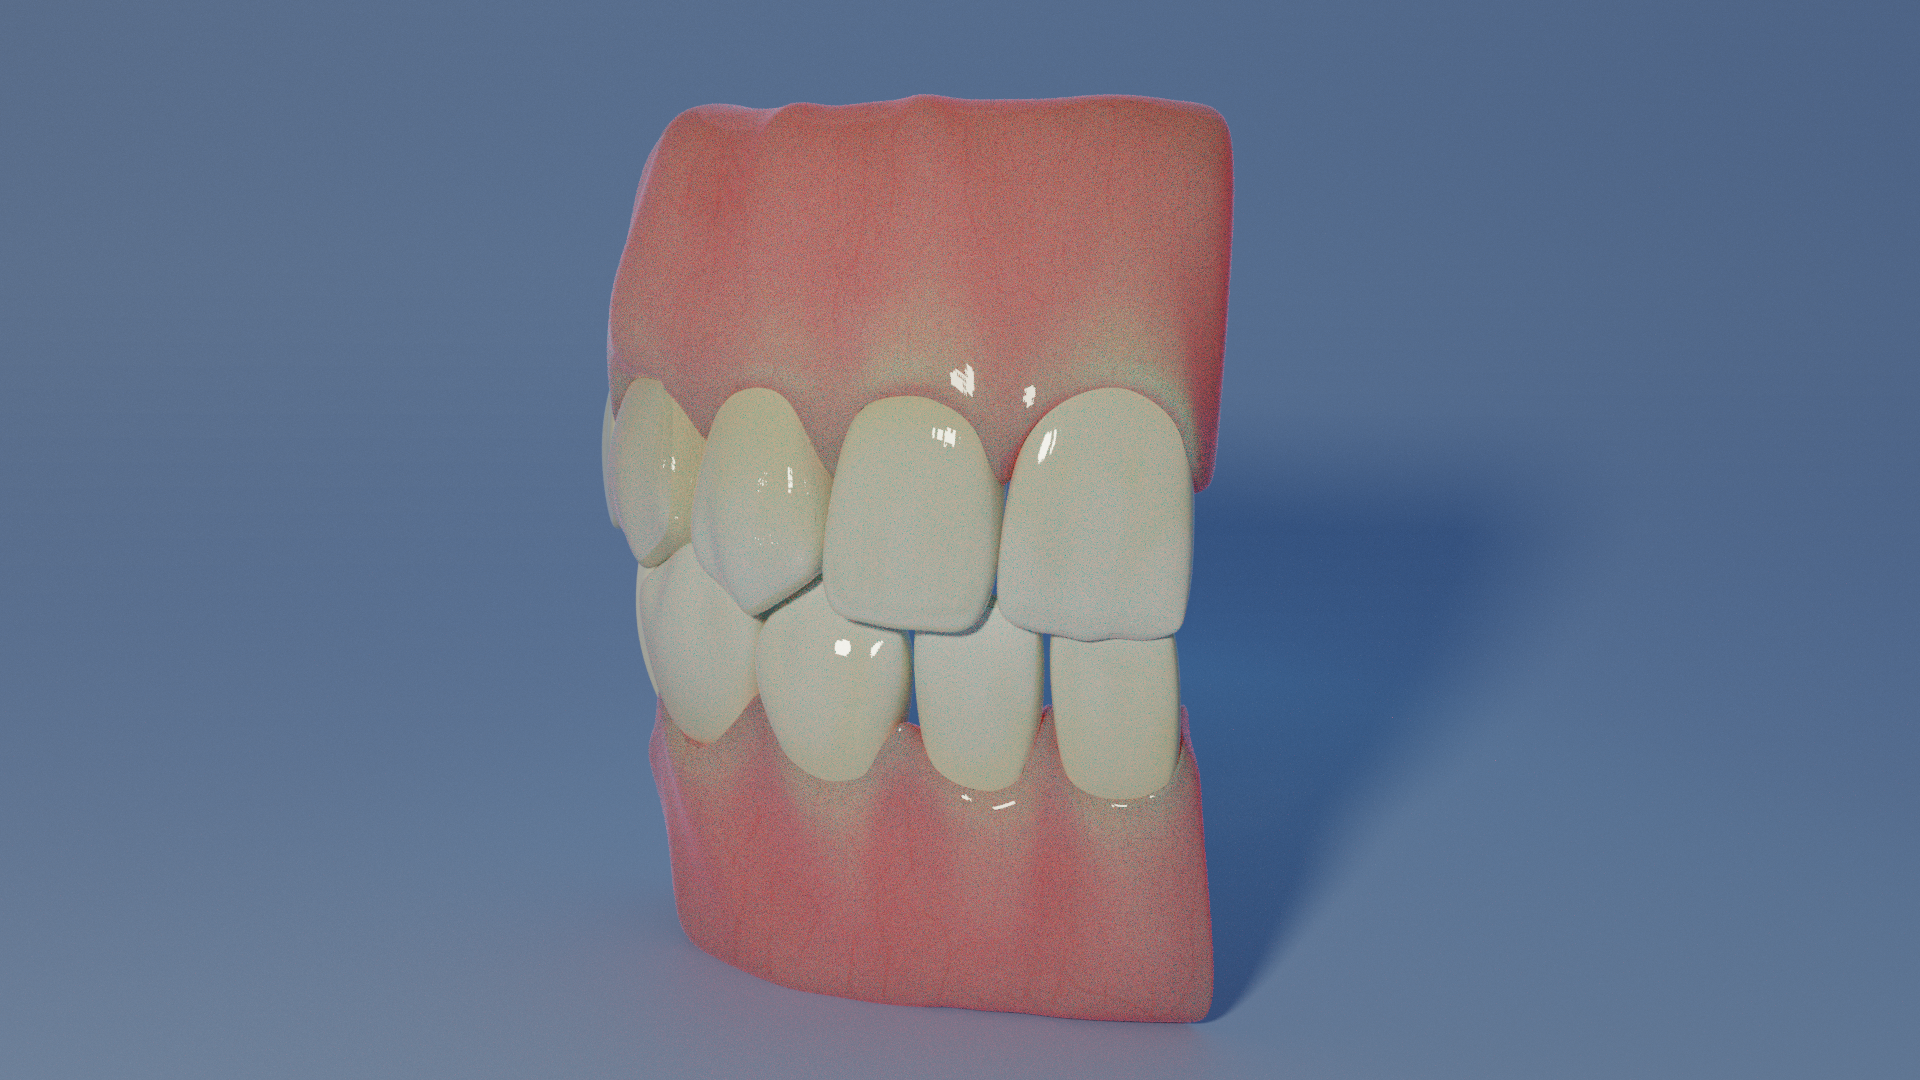 Teeth and Gum Model